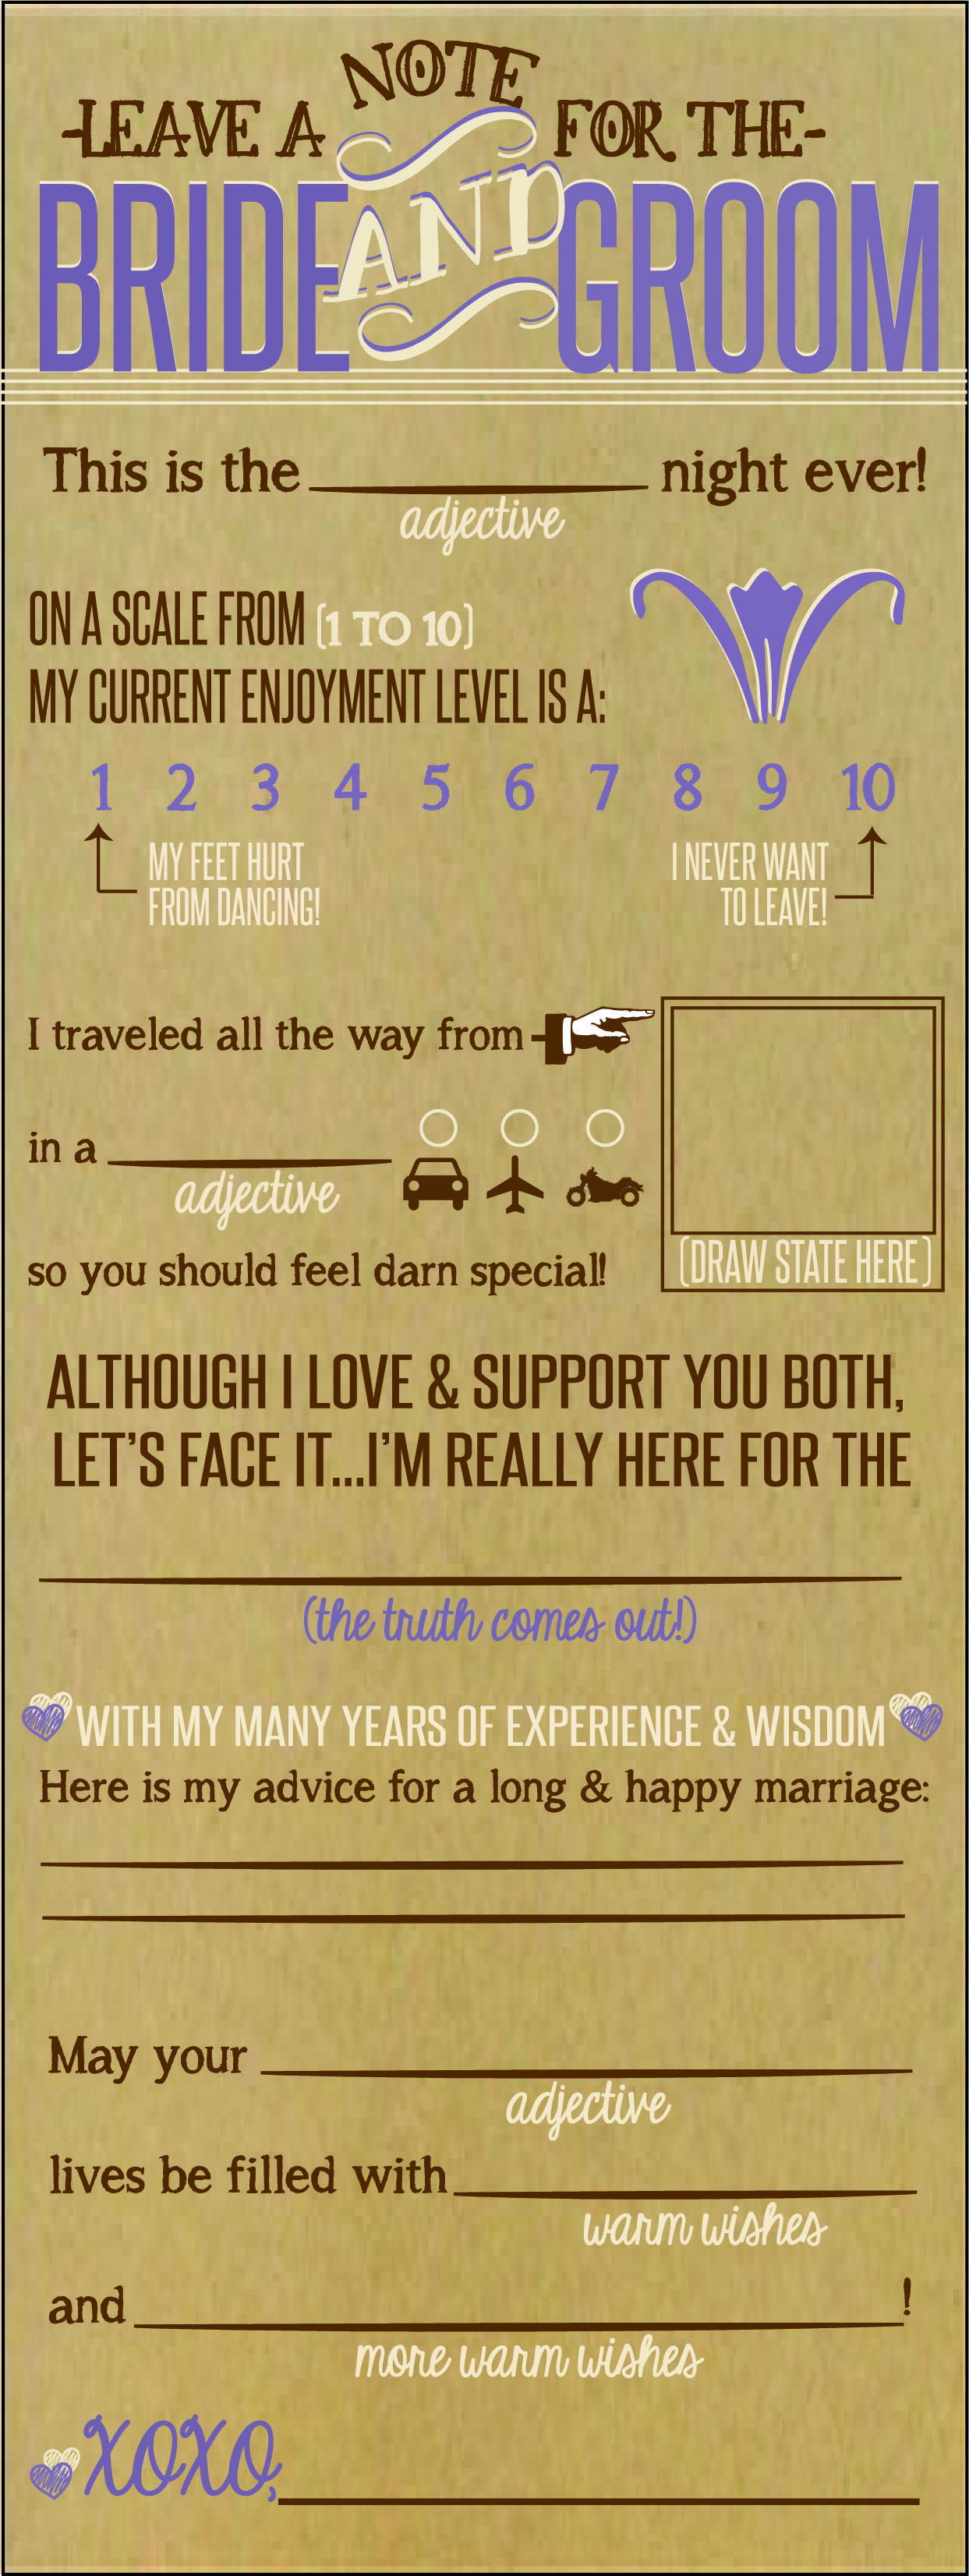 Bride And Groom Note